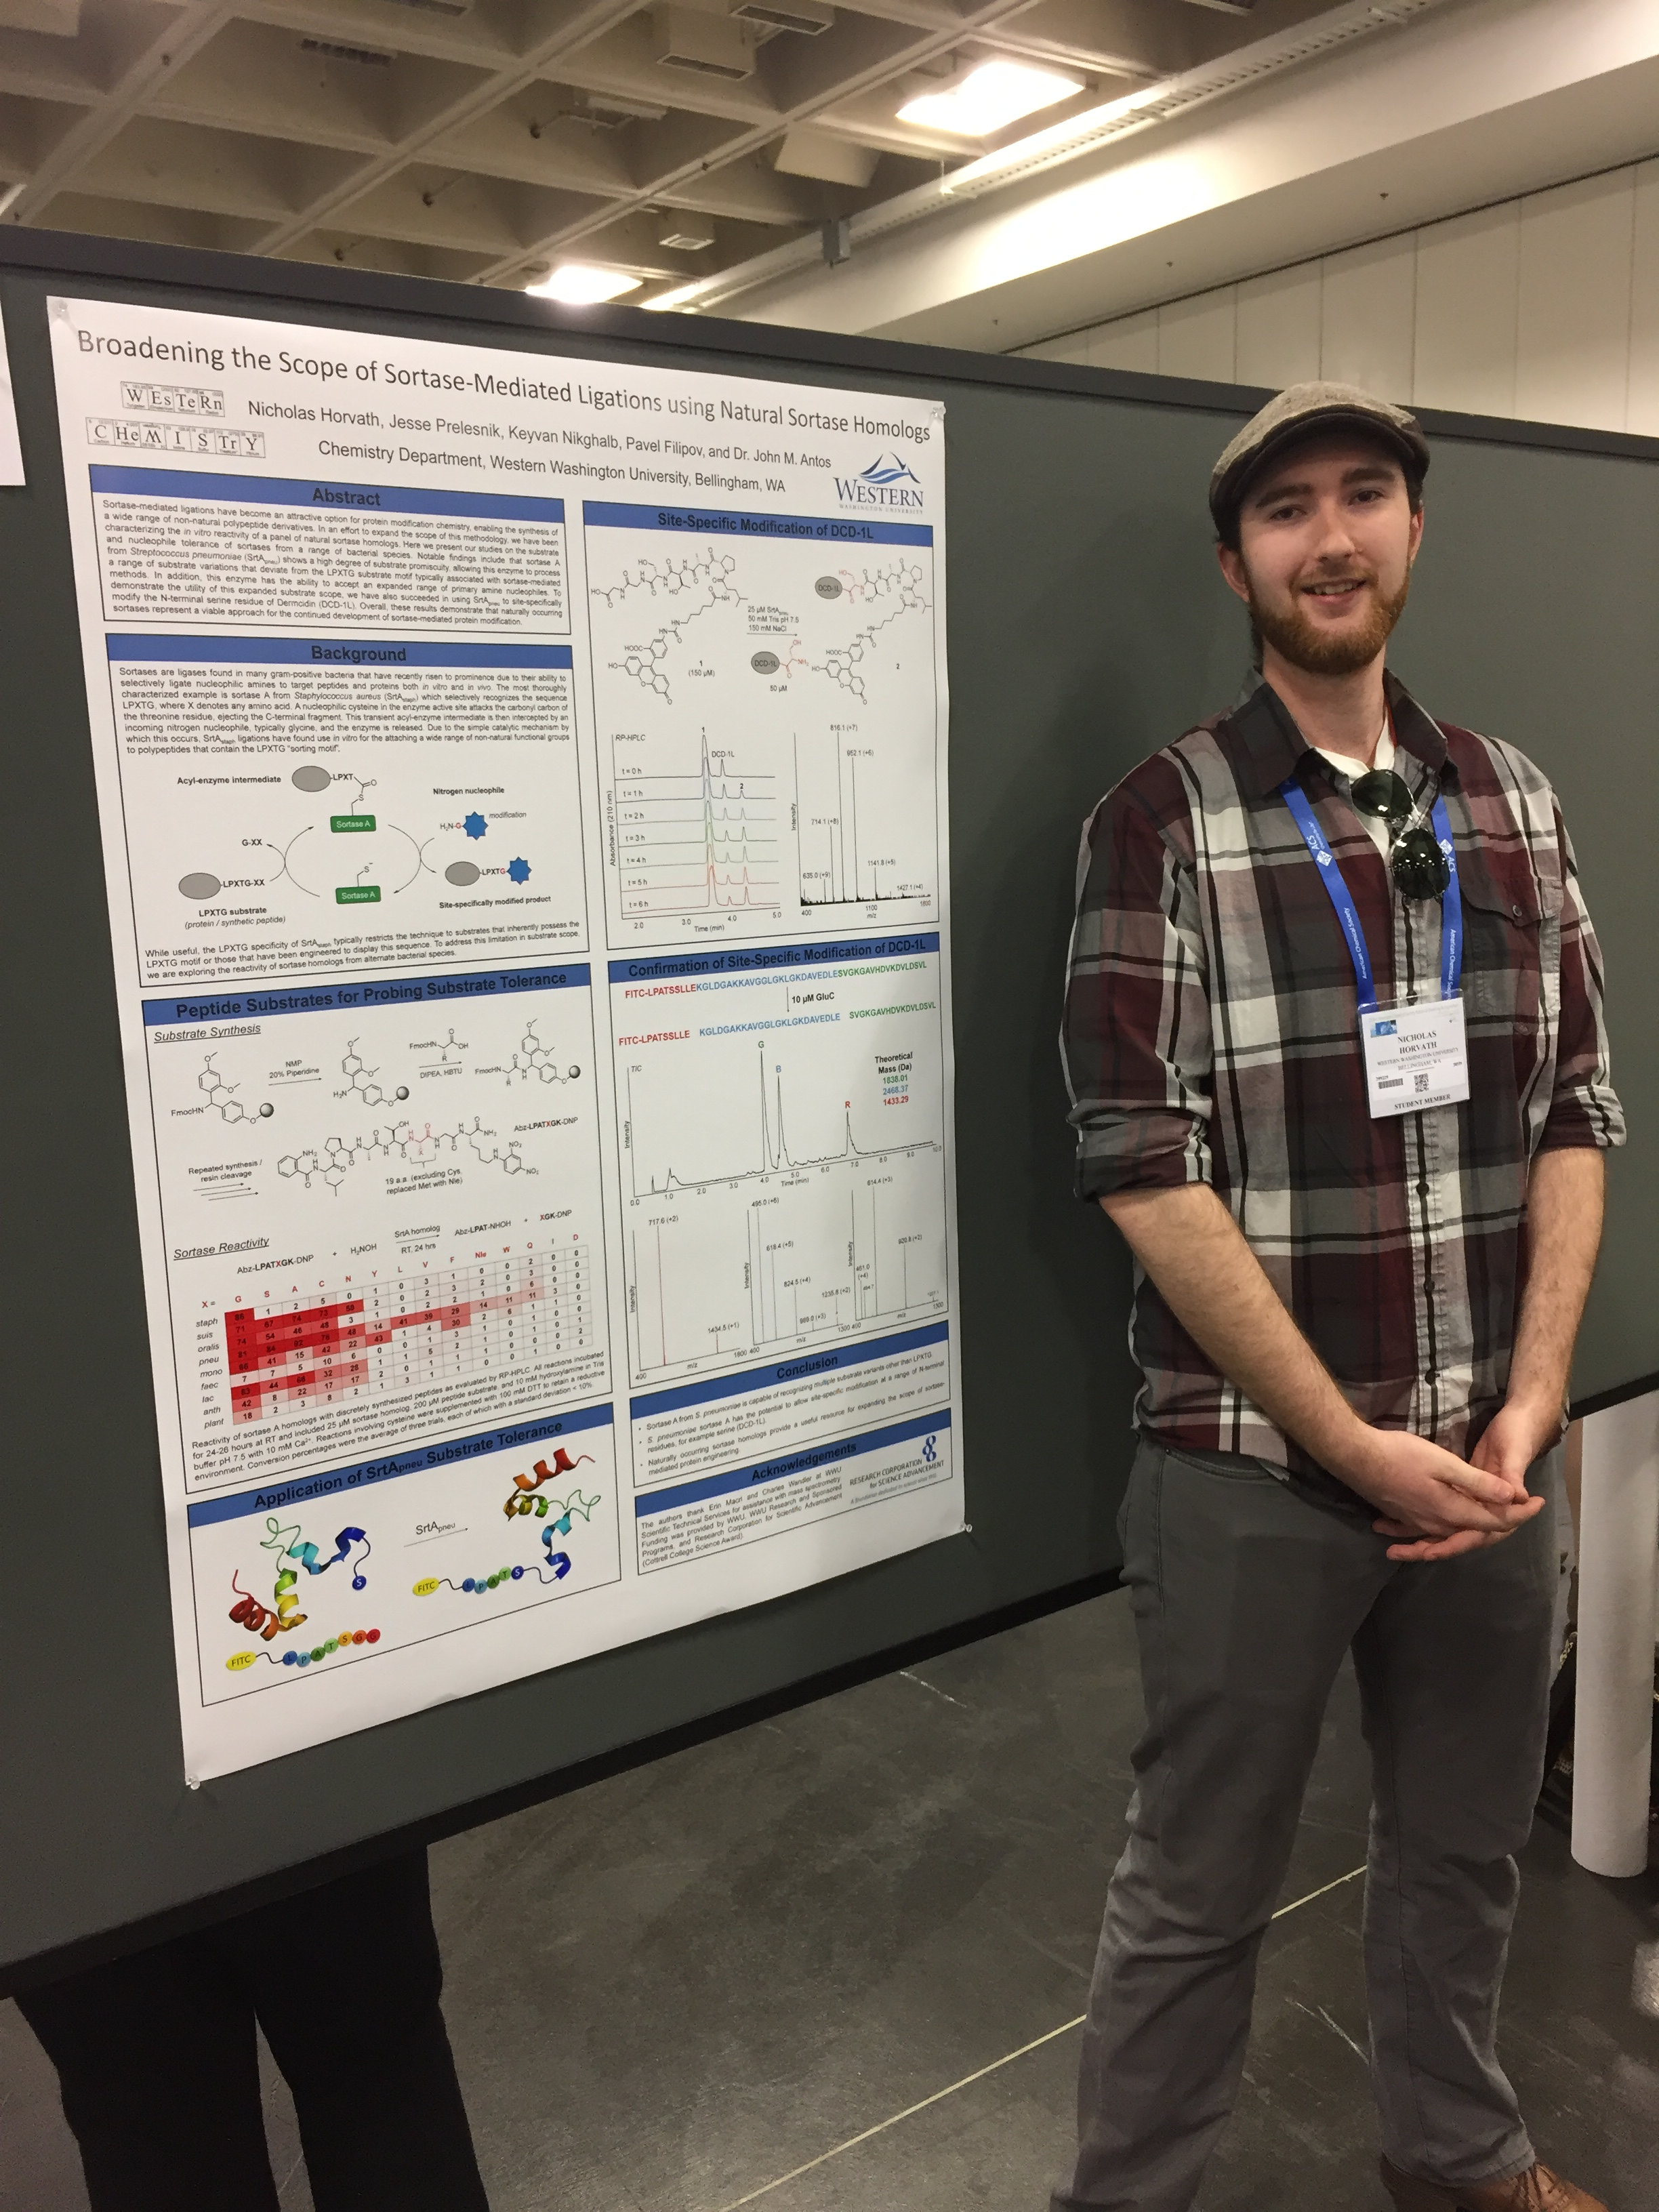 Nicholas Horvath smiling next to his research poster